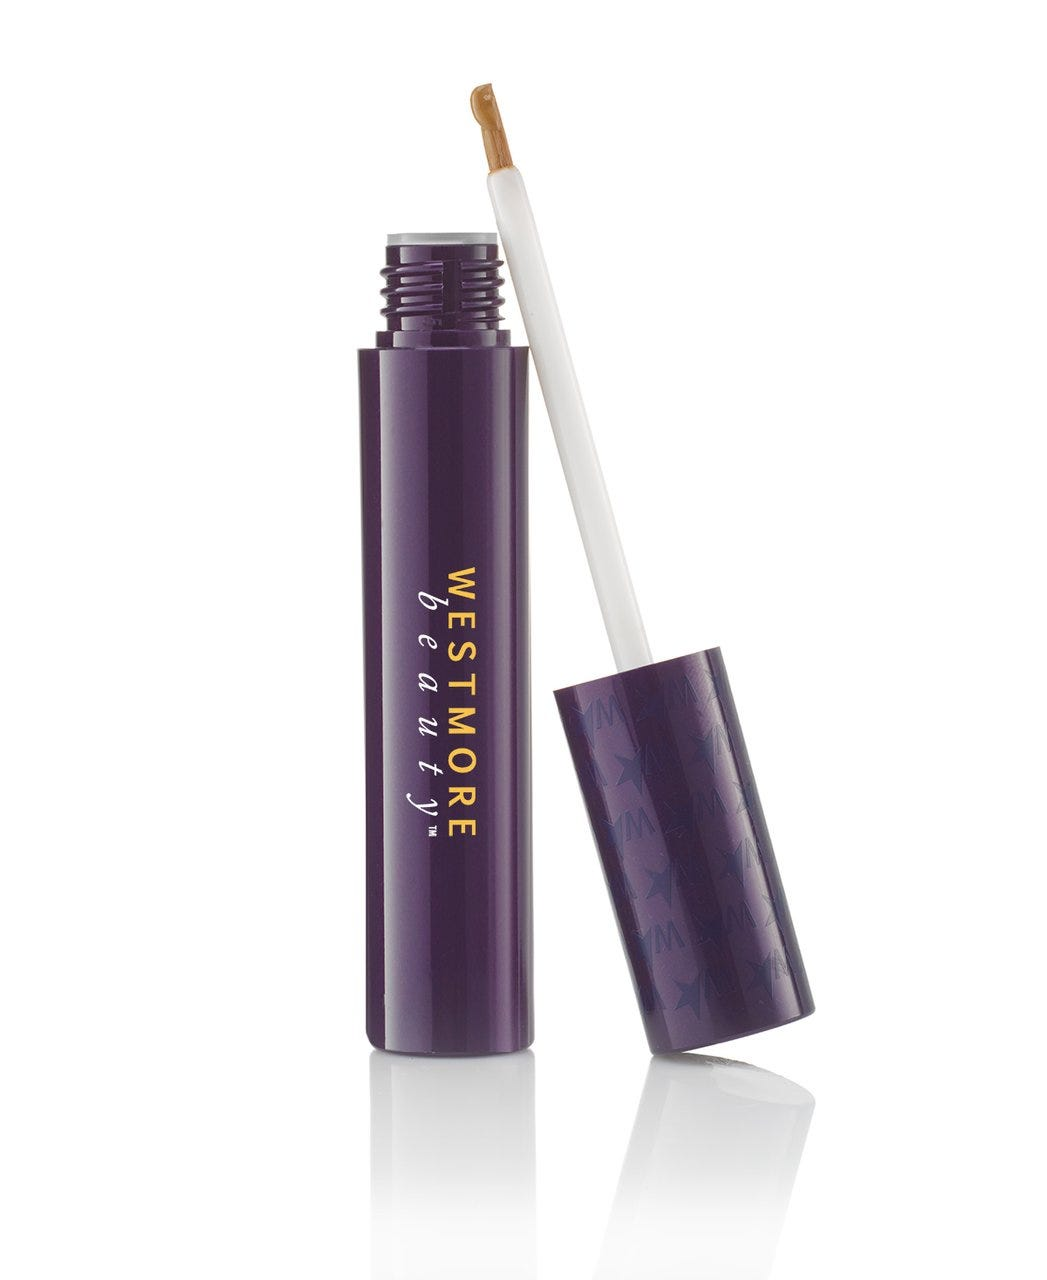 Refinery29 Pomade Tokyo Night Lavender Red Try This Unique Tinted Brow Gel That Uses A Thin Like Pigment To Color In The Sparse Areas Of Your Arches